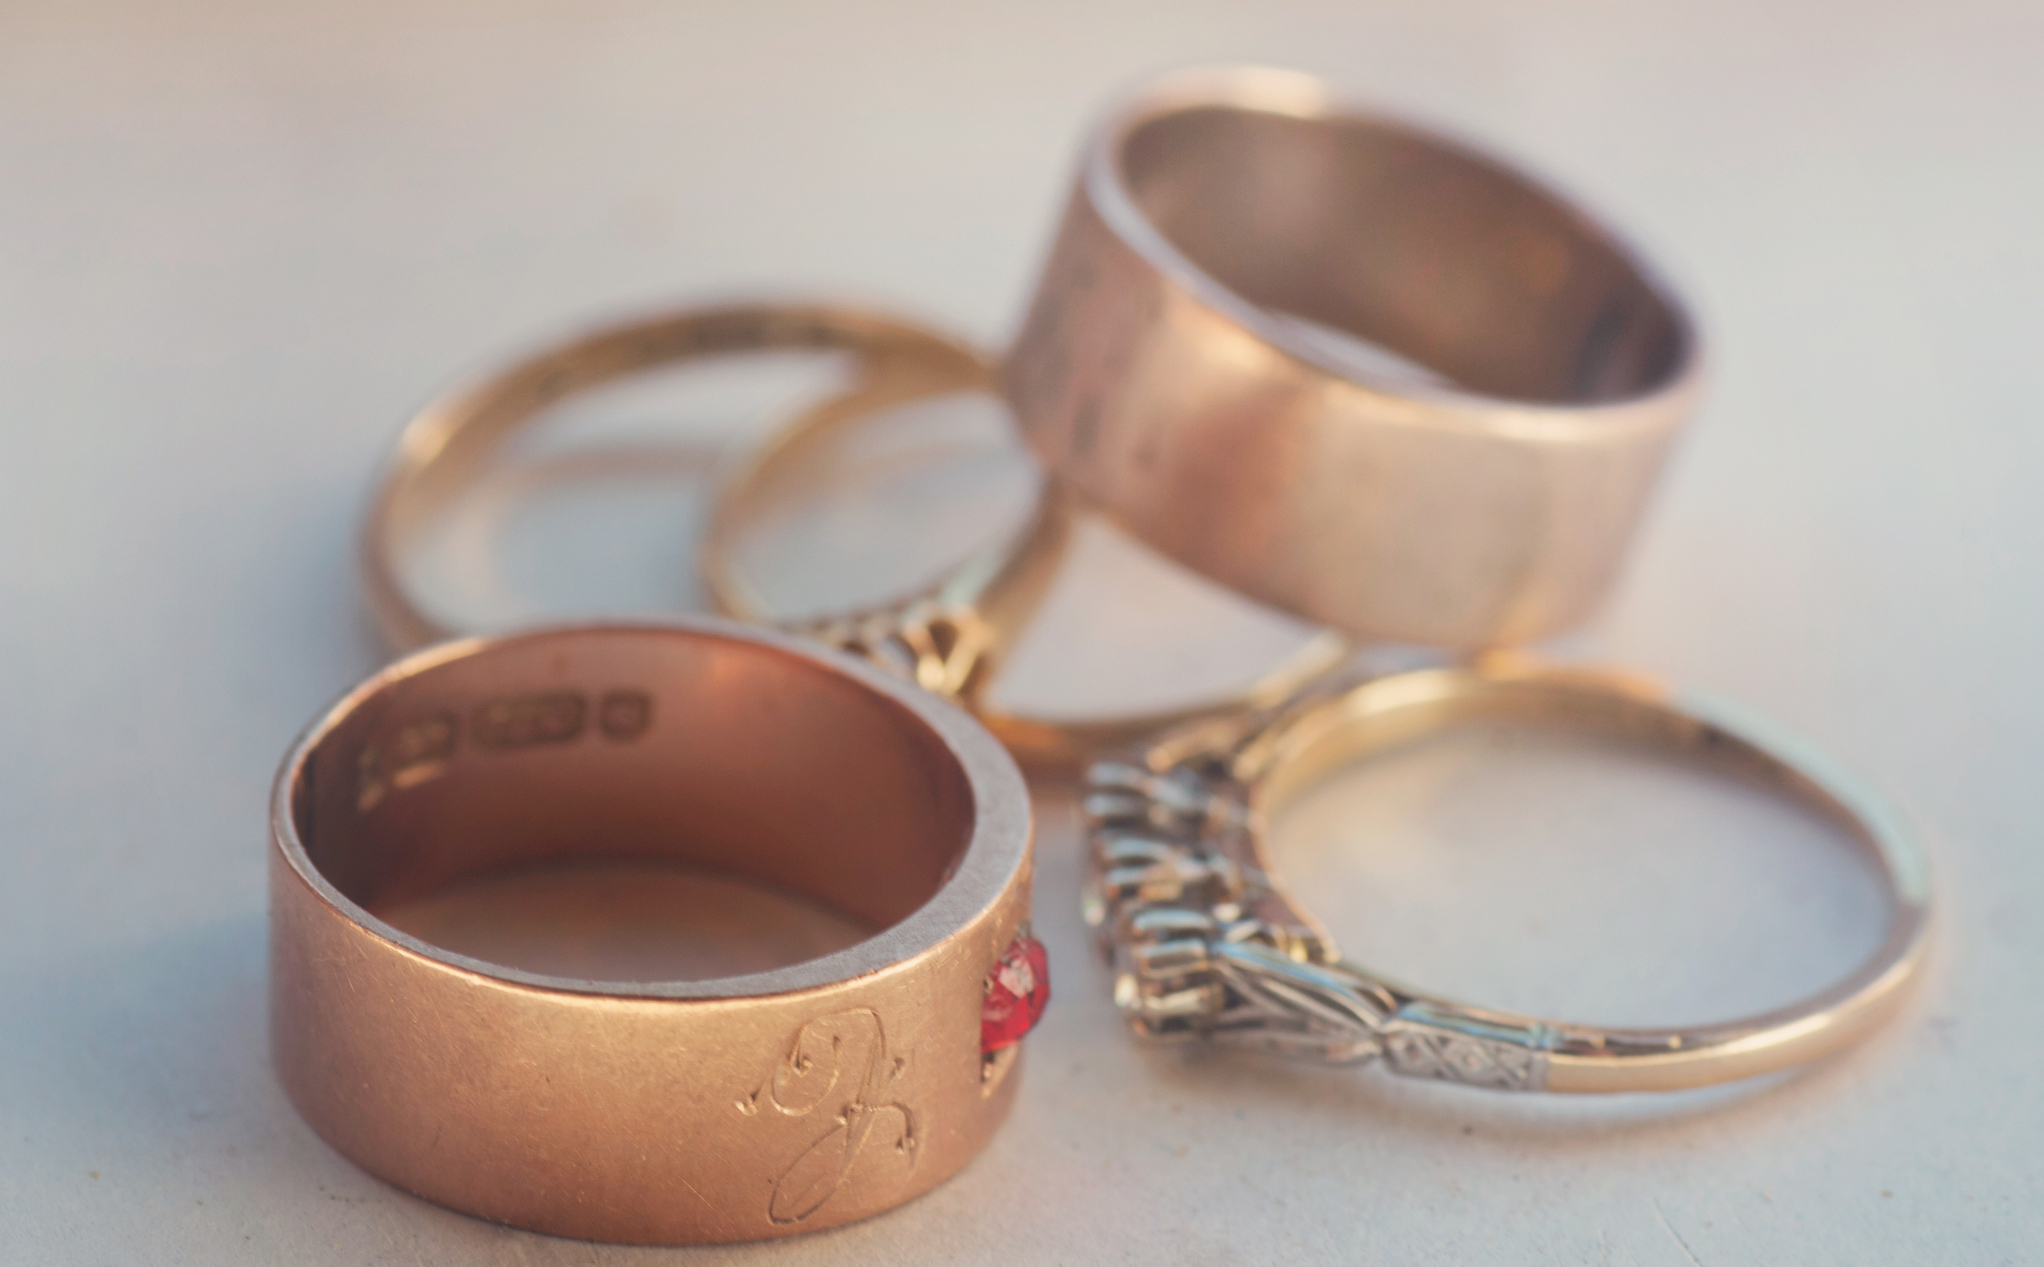 Right Hand Rings Are The Hot Accessory Single Women Ing Themselves Sheknows